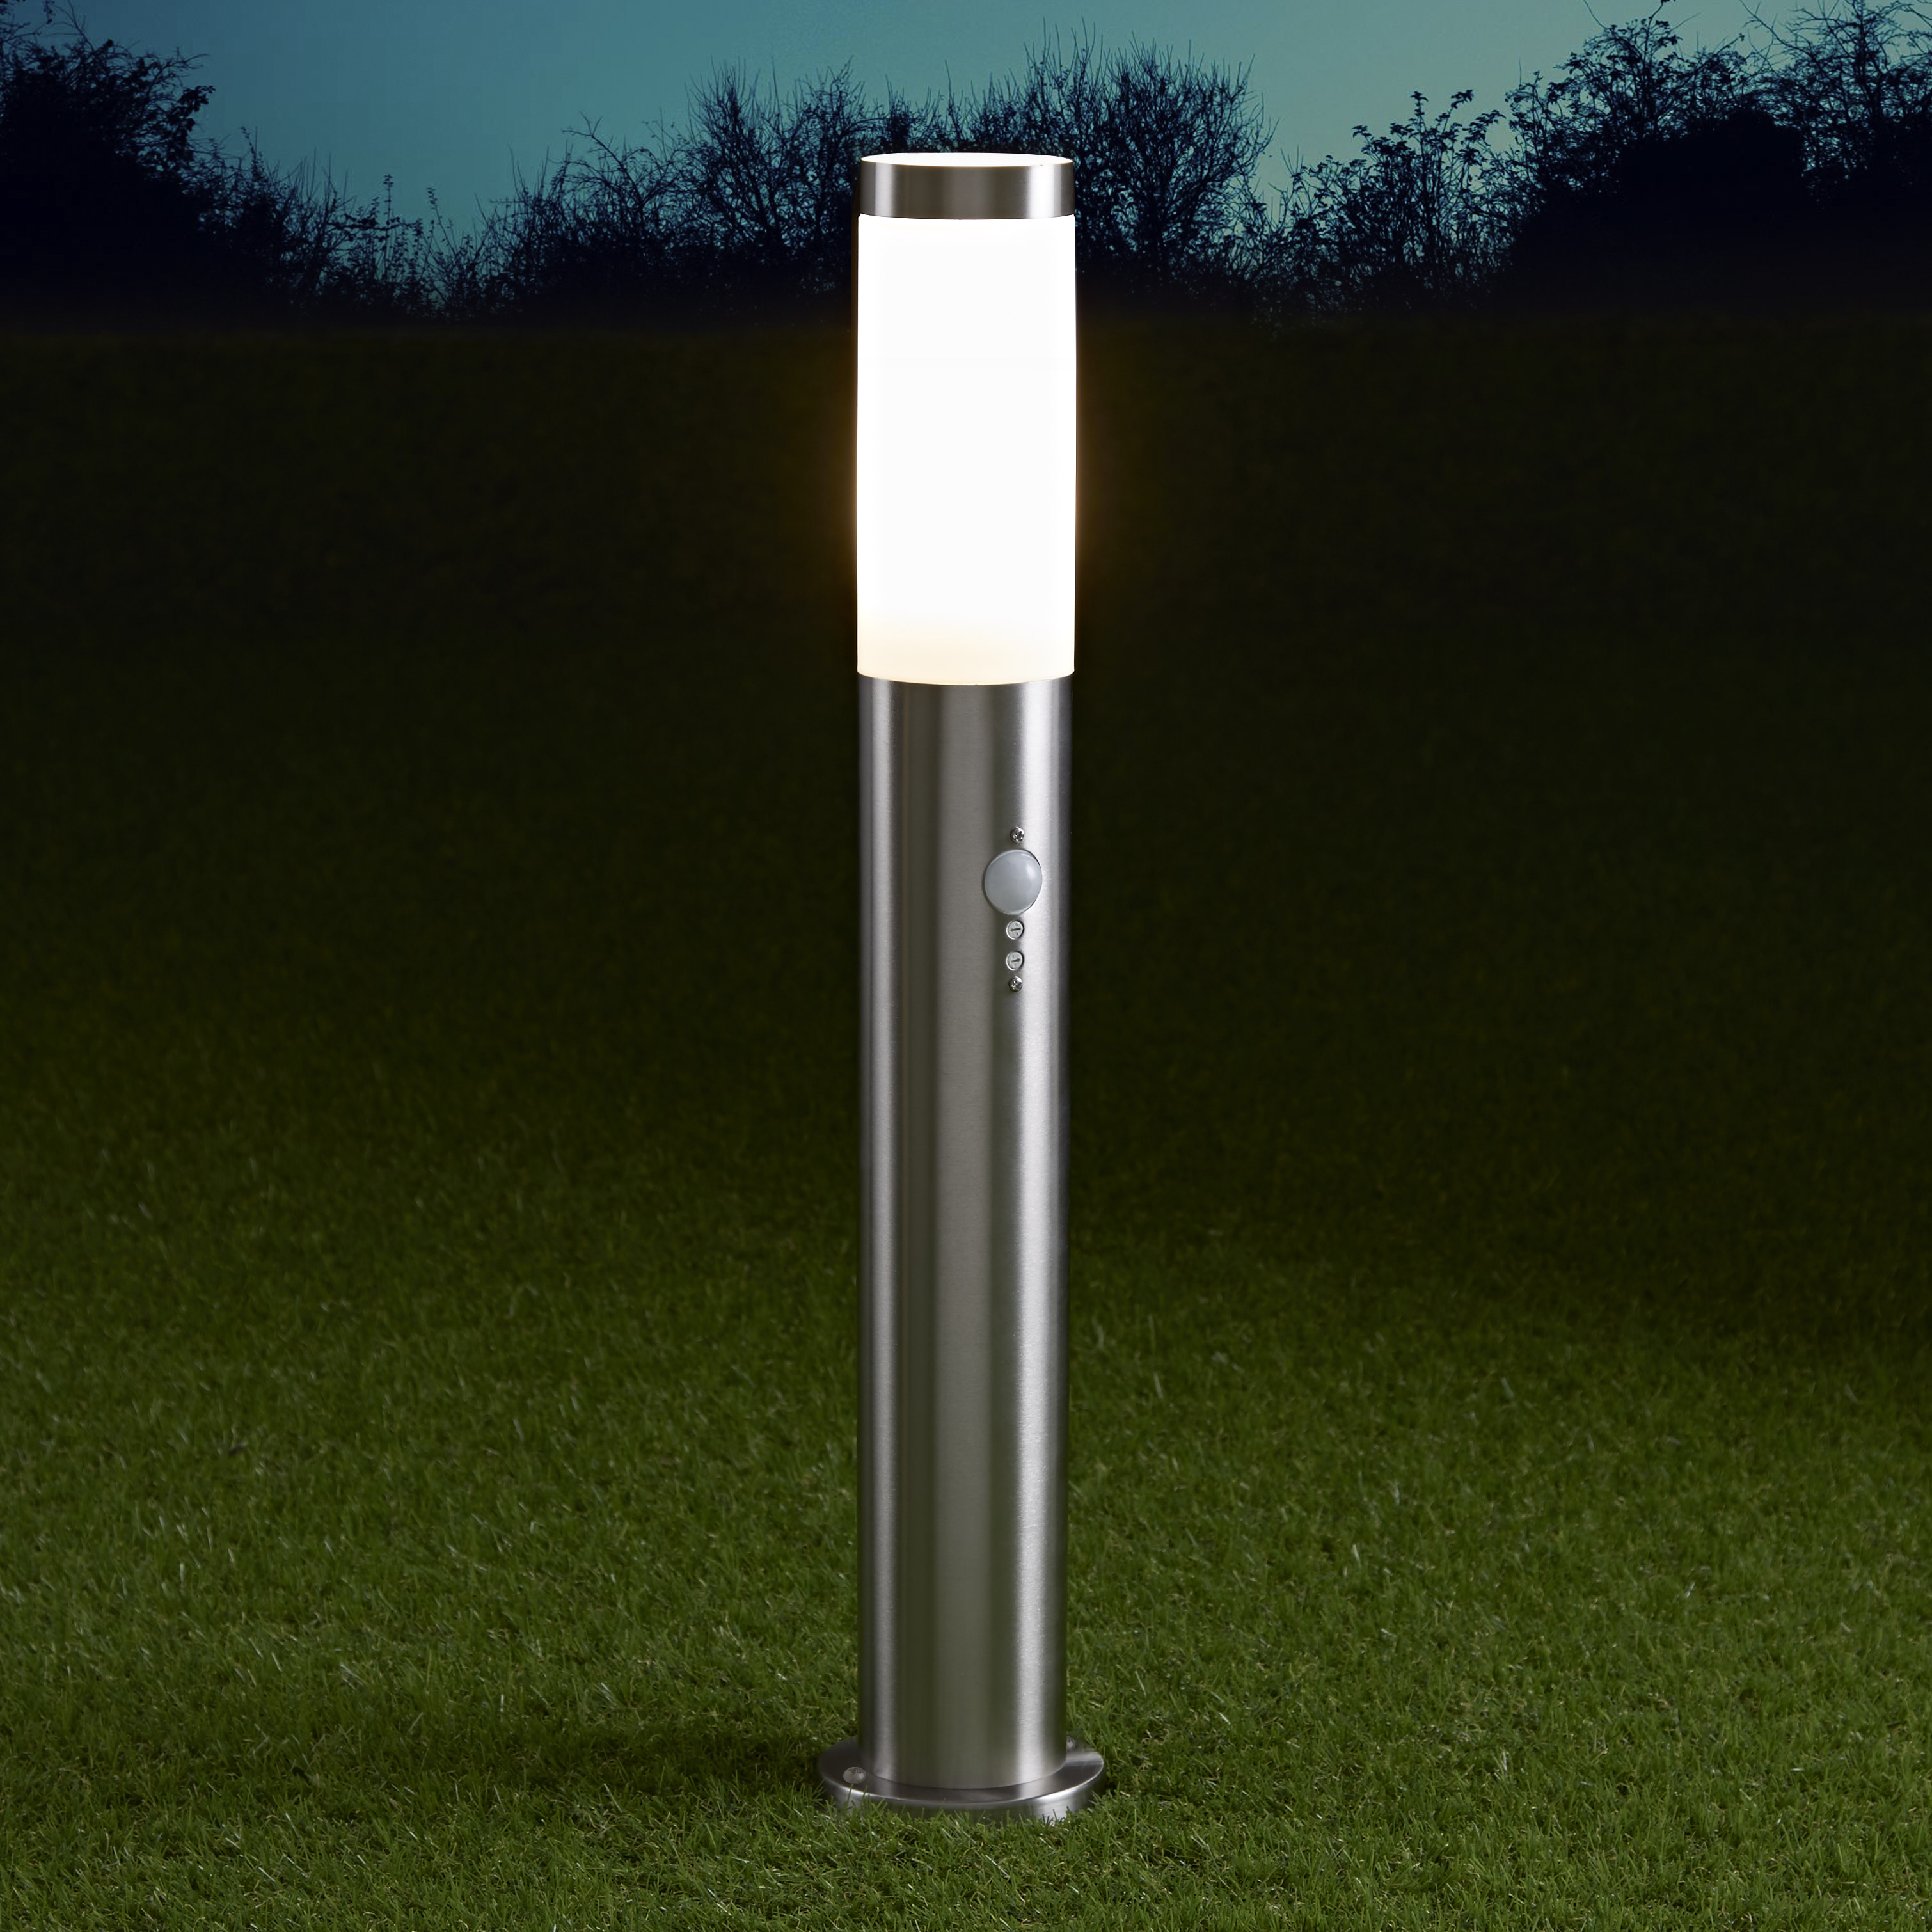 Biard Le Mans IP44 Bollard Light with PIR - 600mm